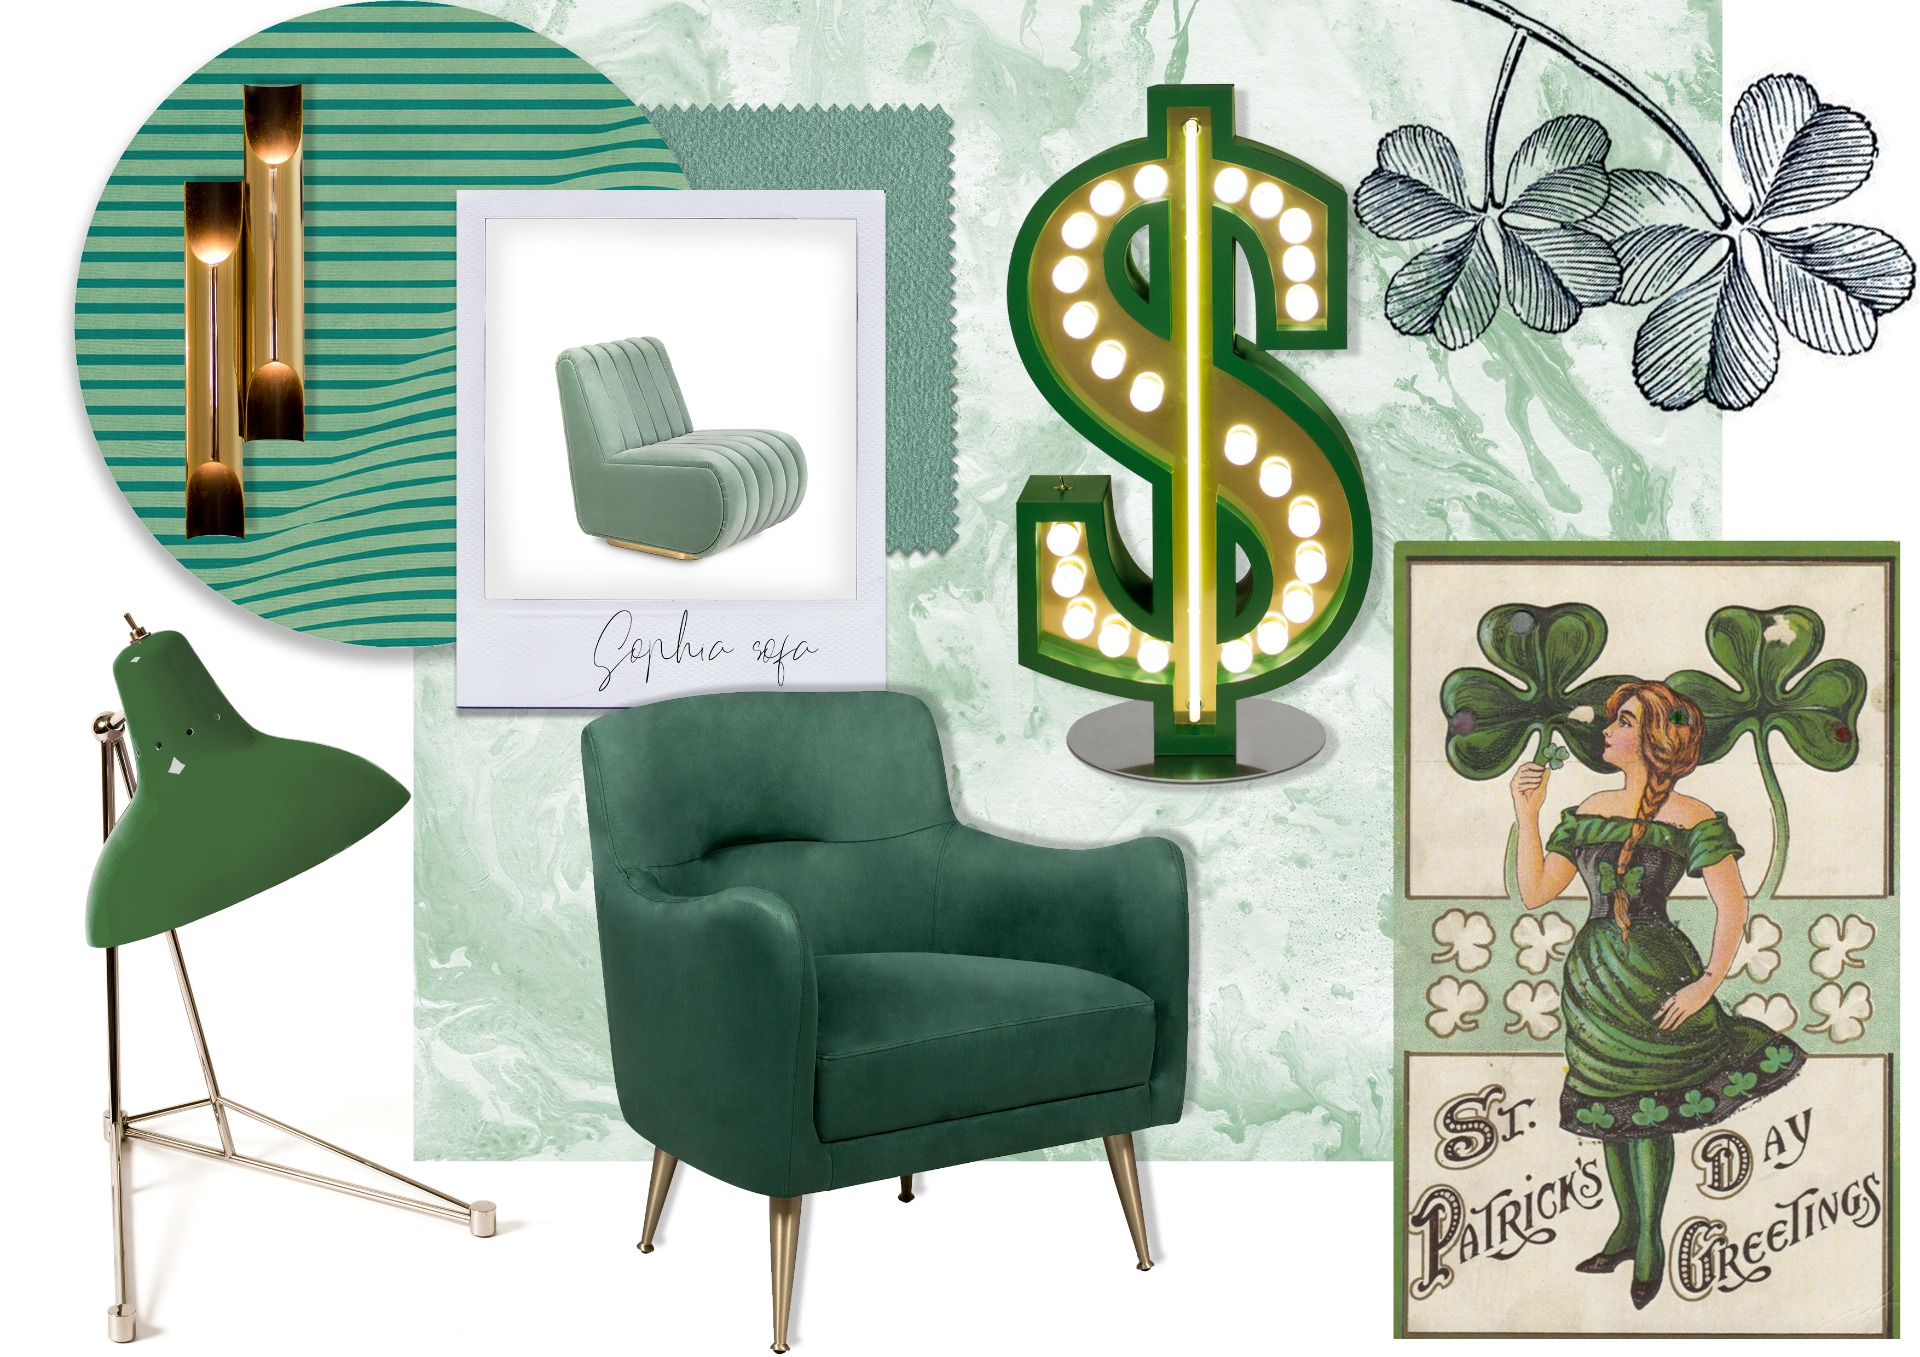 🍀How You Can Celebrate Saint Patrick's Day At Home - AND HAVE A BLAST!🌈 saint patrick 🍀How You Can Celebrate Saint Patrick's Day At Home – AND HAVE A BLAST!🌈 patricks day